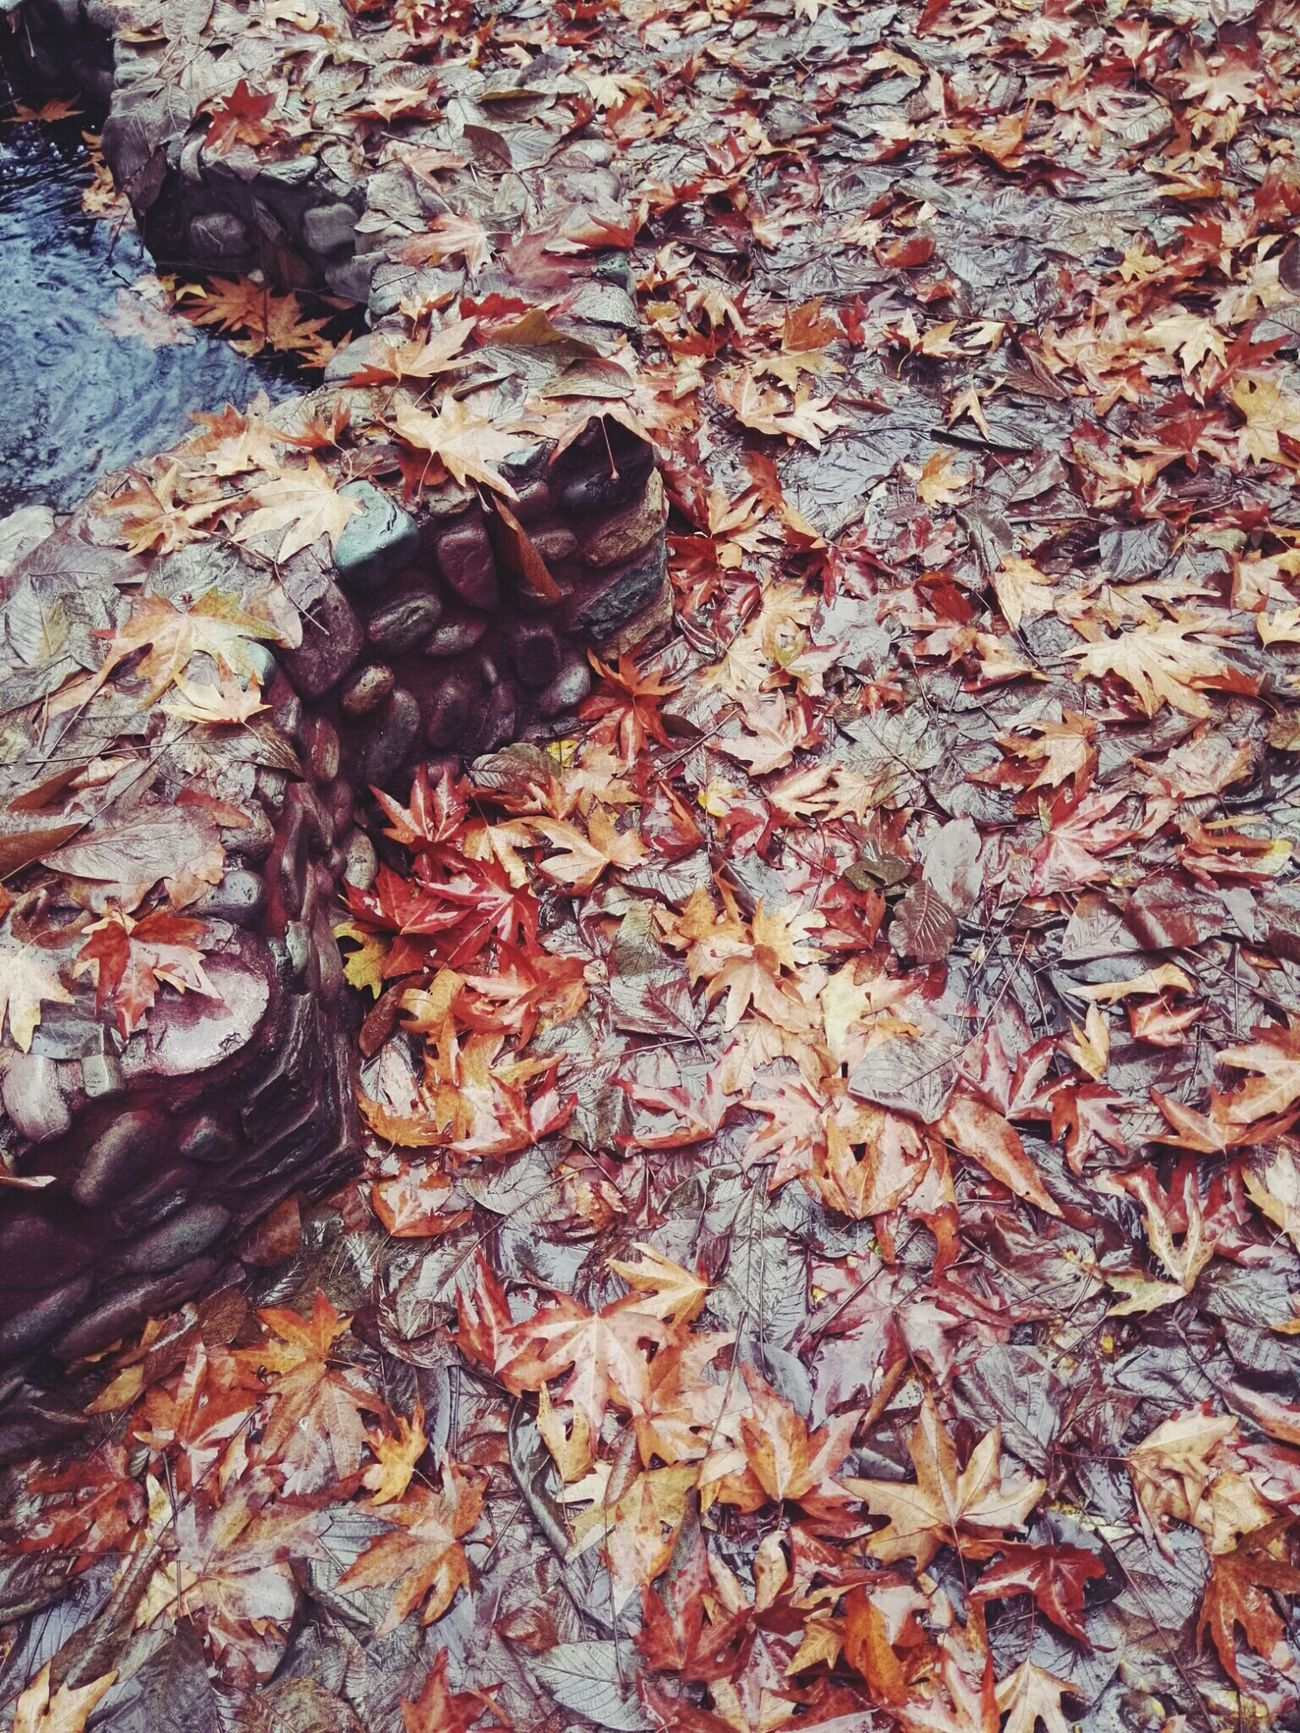 My Year My View No People Day Outdoors Nature Nature Beautiful Love Landscape Life Outdoor Carefree Beauty In Nature No Man Happy Colors Beauty Colorfull Autumn Autumn Colors Autumn🍁🍁🍁 Fall Leaves Animal Themes Close-up